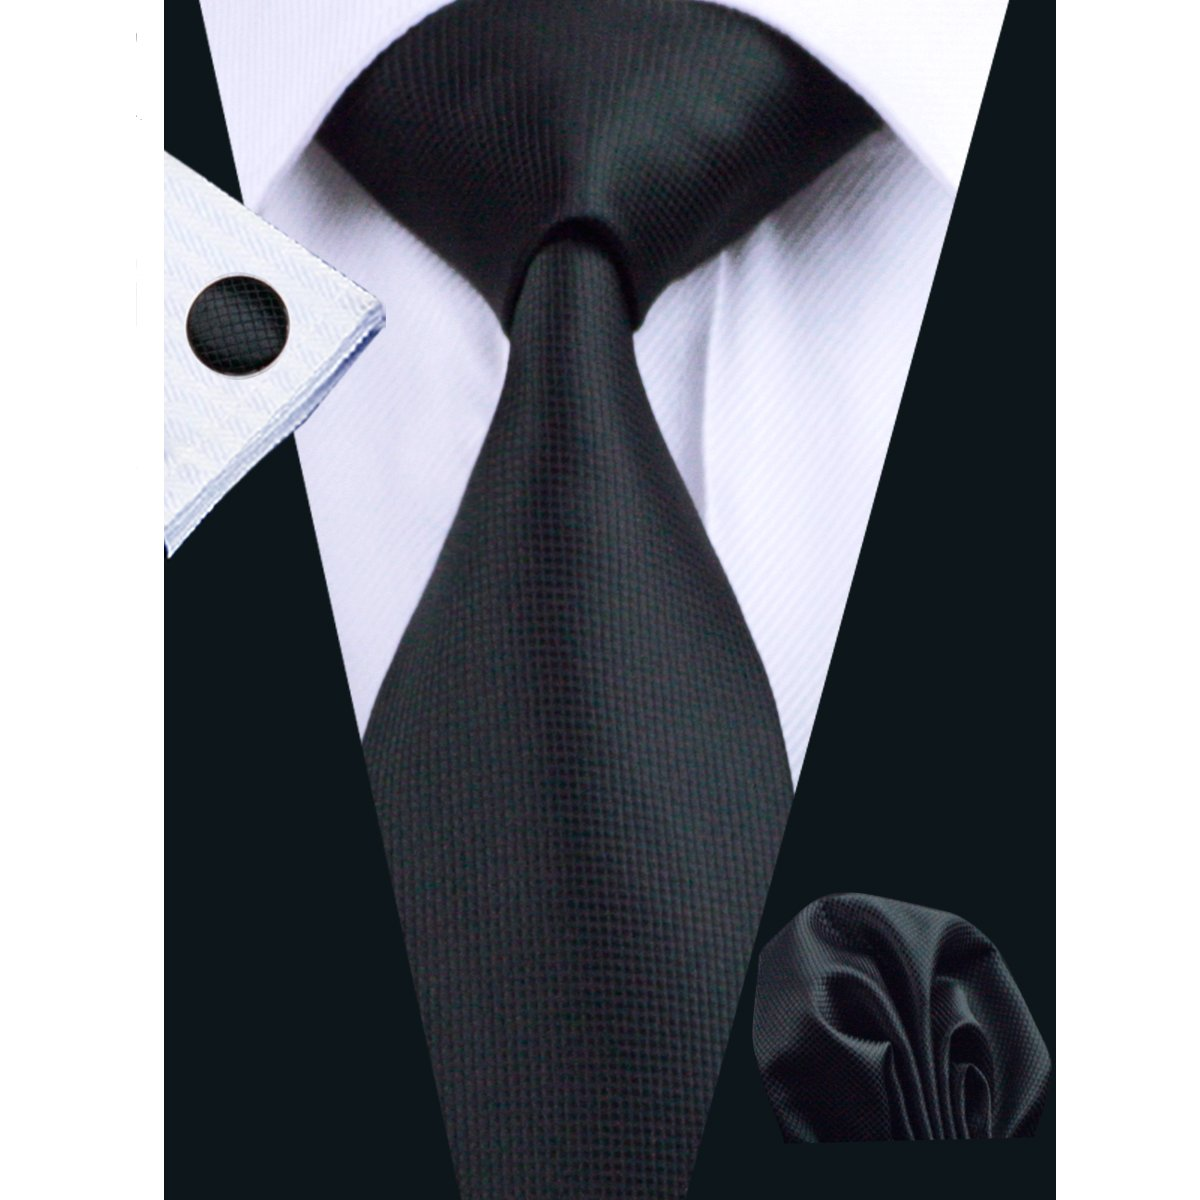 Hi-Tie Classic Necktie Set Solid Color Silk Ties for Men